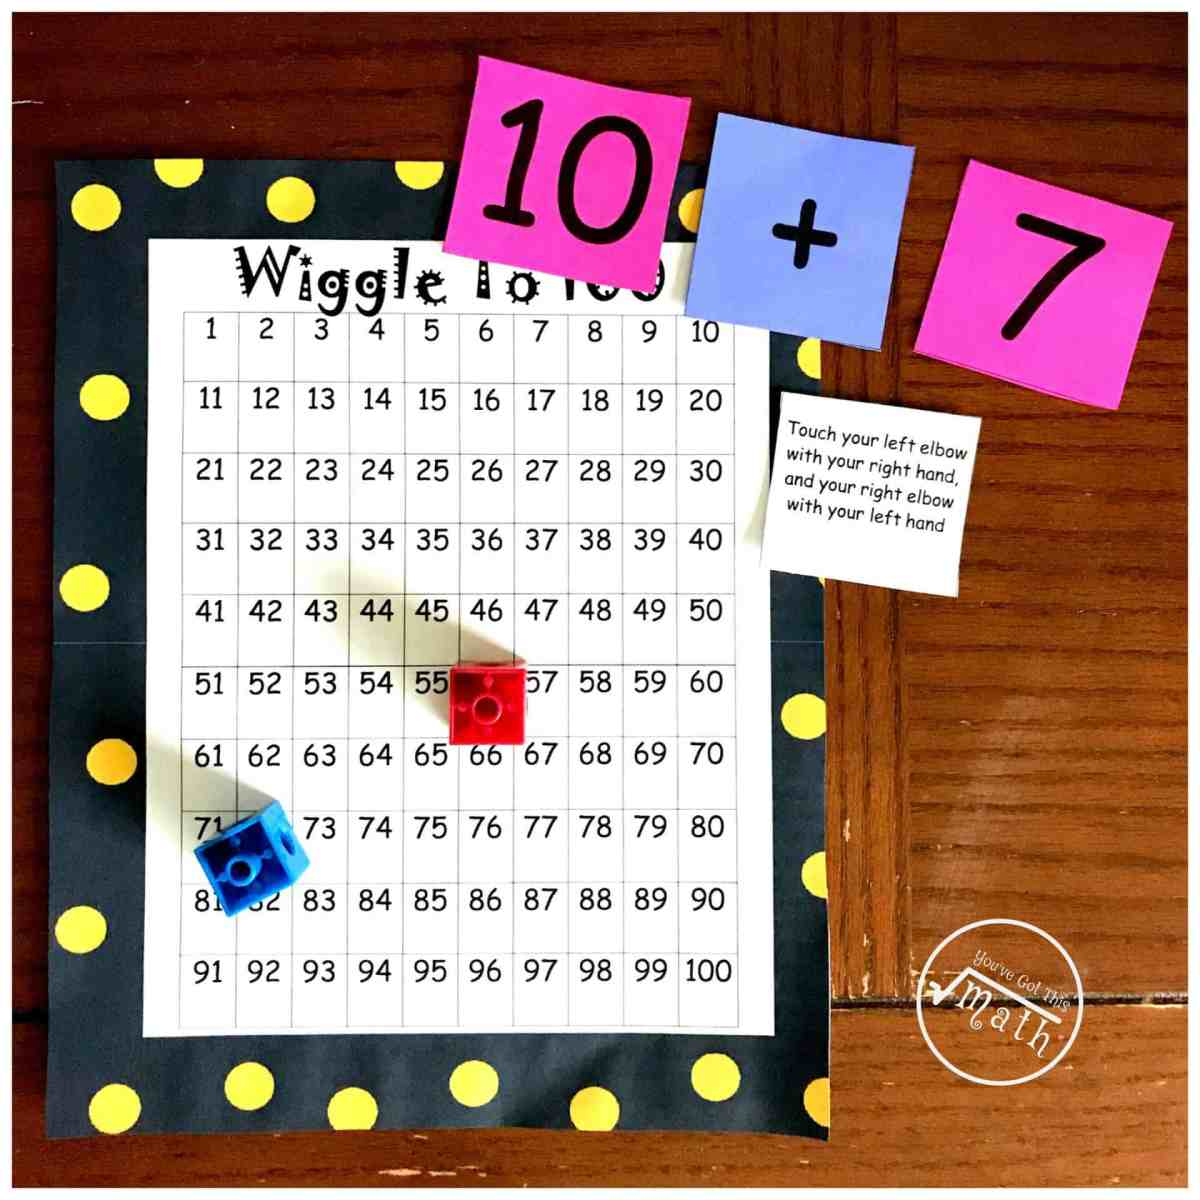 Grab a Free Adding and Subtracting Movement Game - Wiggle to 100